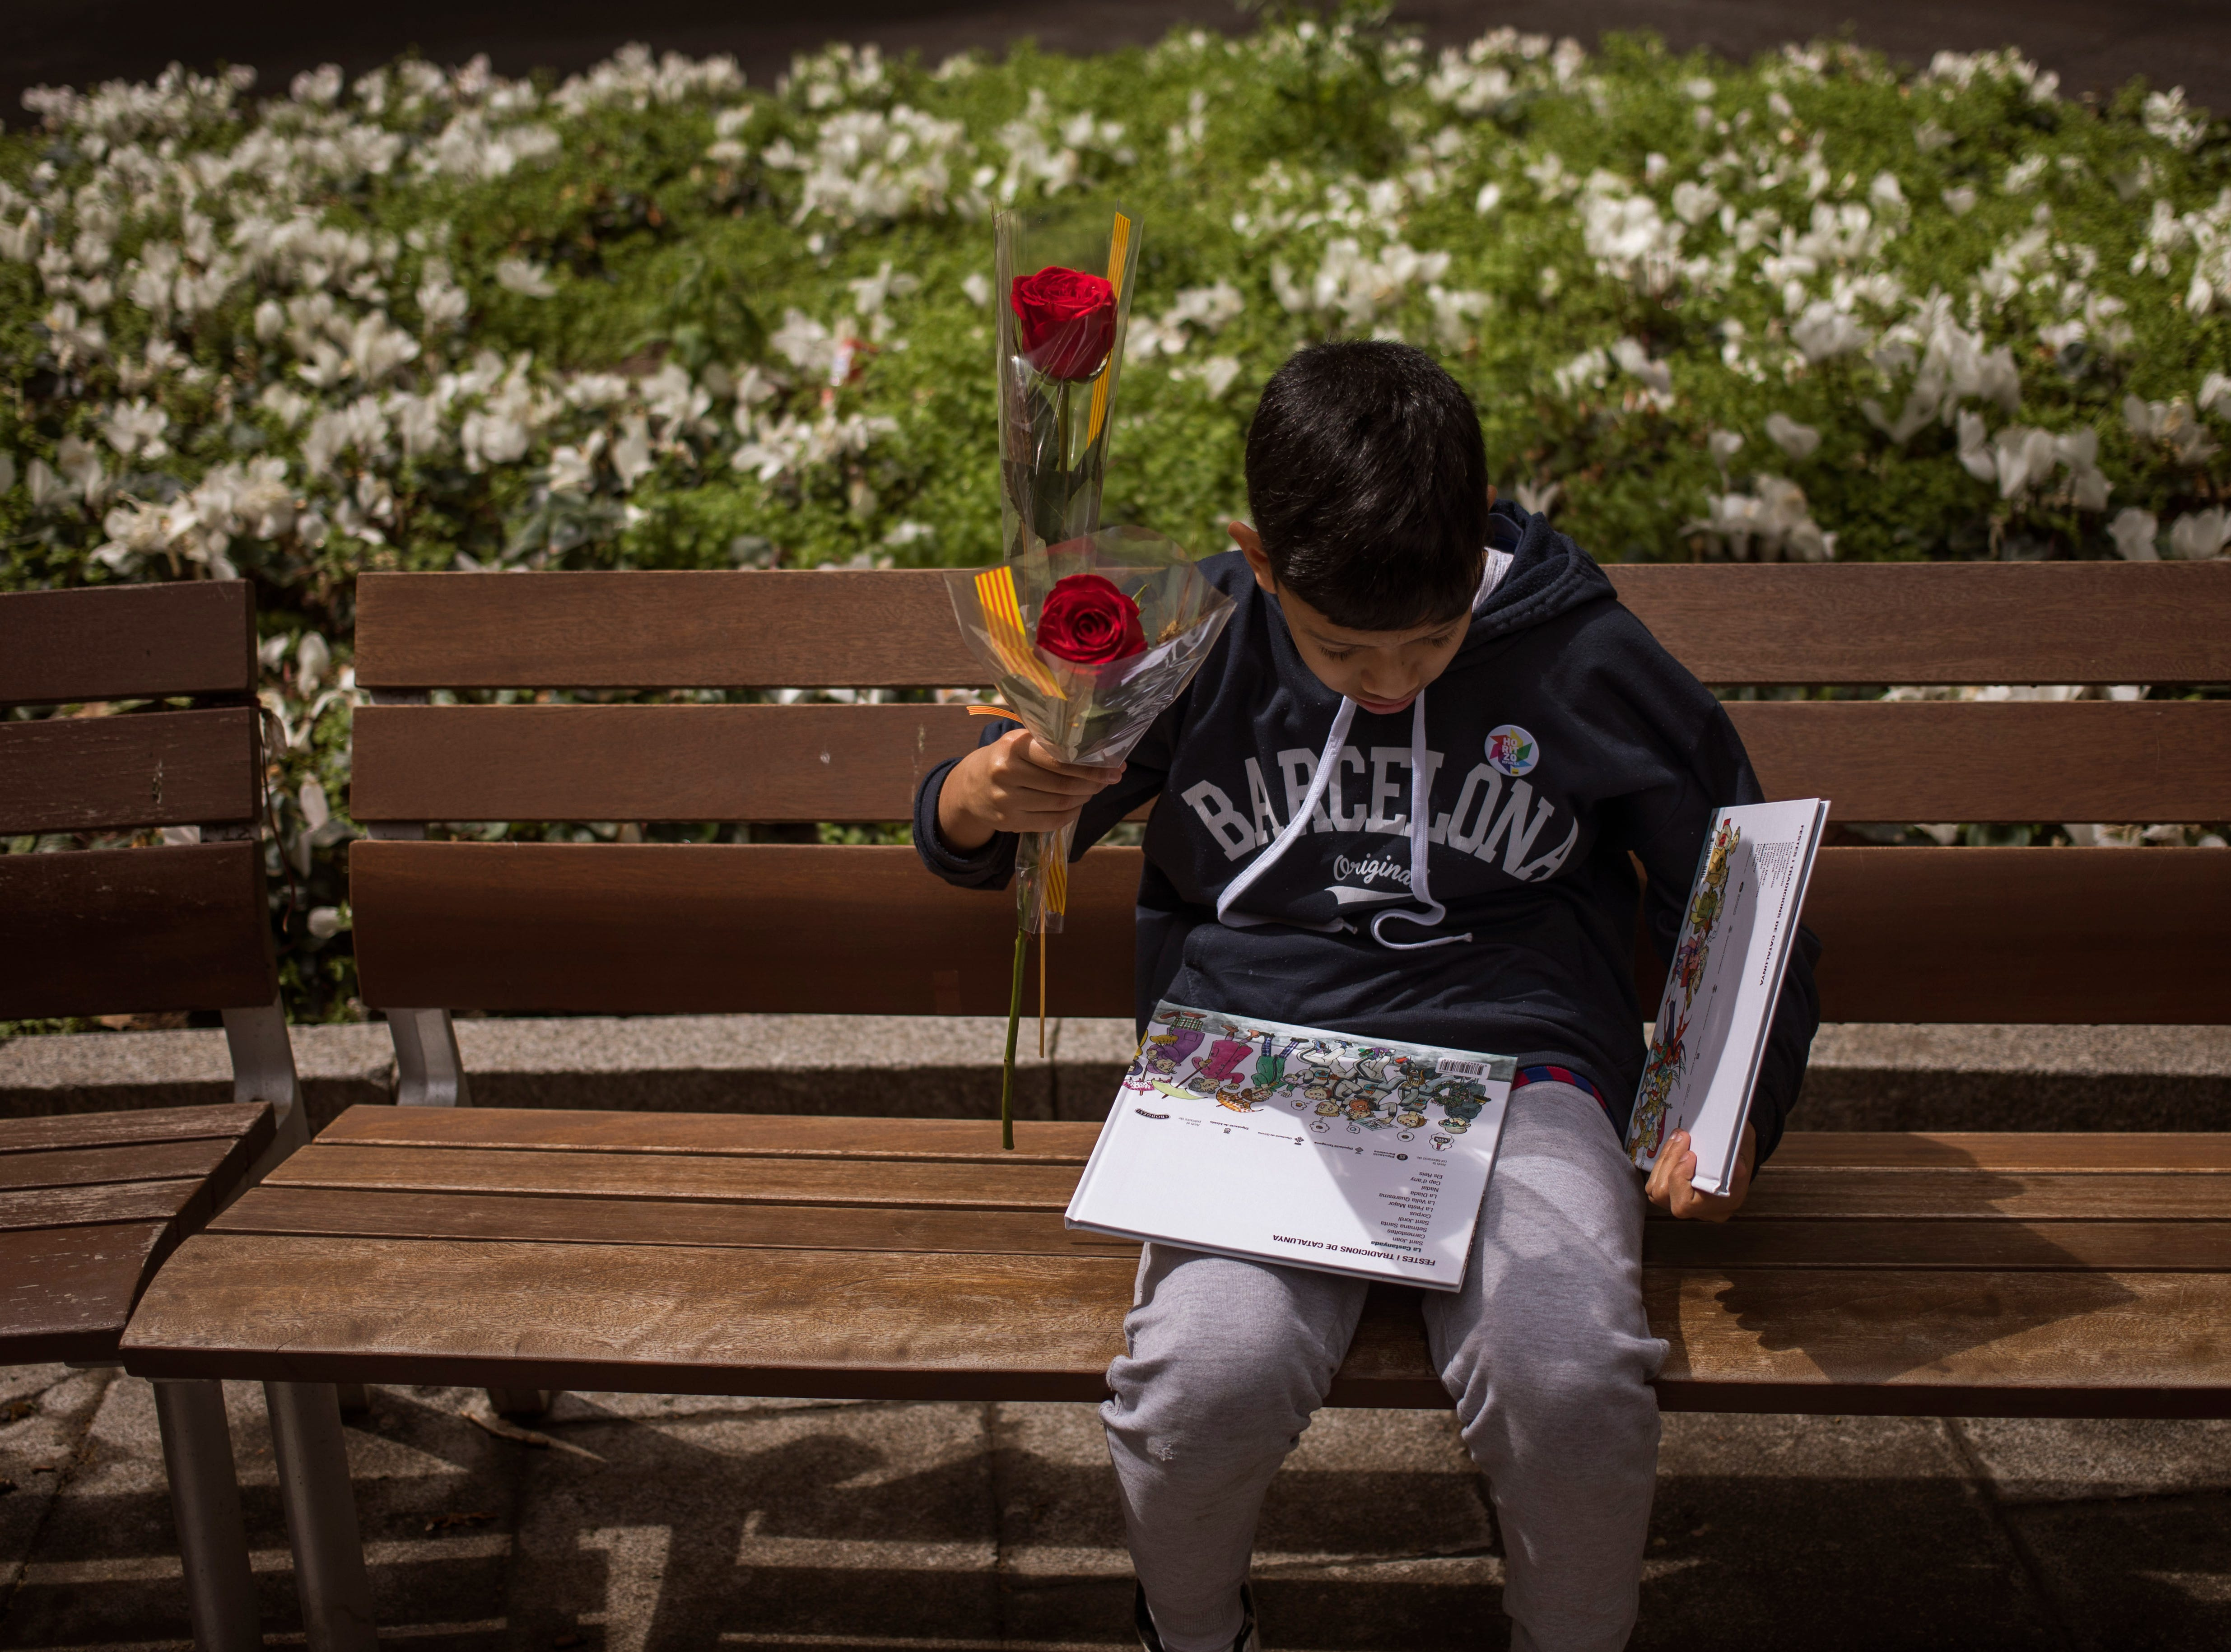 A boy hold roses as he reads a book after buying it at a makeshift stand as Catalans celebrate the day of their patron saint in Barcelona, Spain, Tuesday, April 23, 2019. Sant Jordi, or Saint George in English, is one of the most important holidays in Catalan culture. To mark the date, lovers close friends and family traditionally gift each other with a red rose and a book.